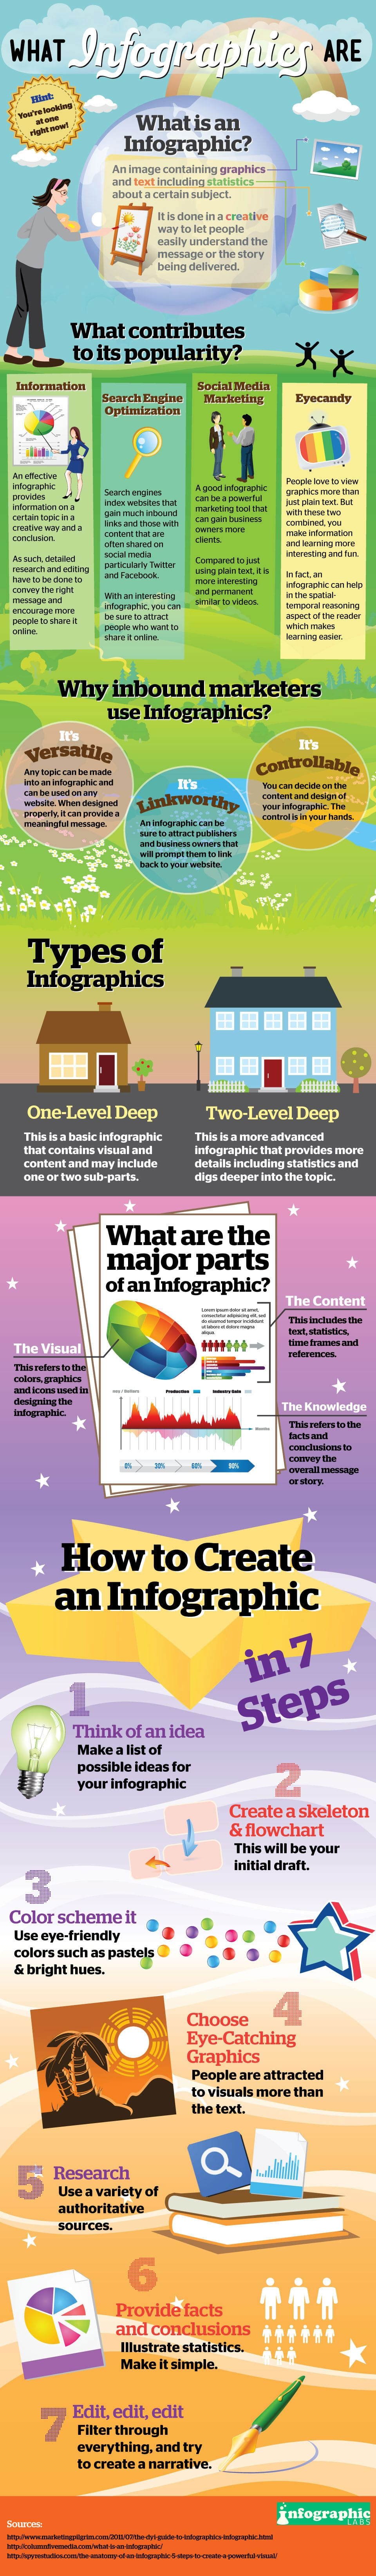 How To Create Your Own Infographic In 7 Steps [Infographic]